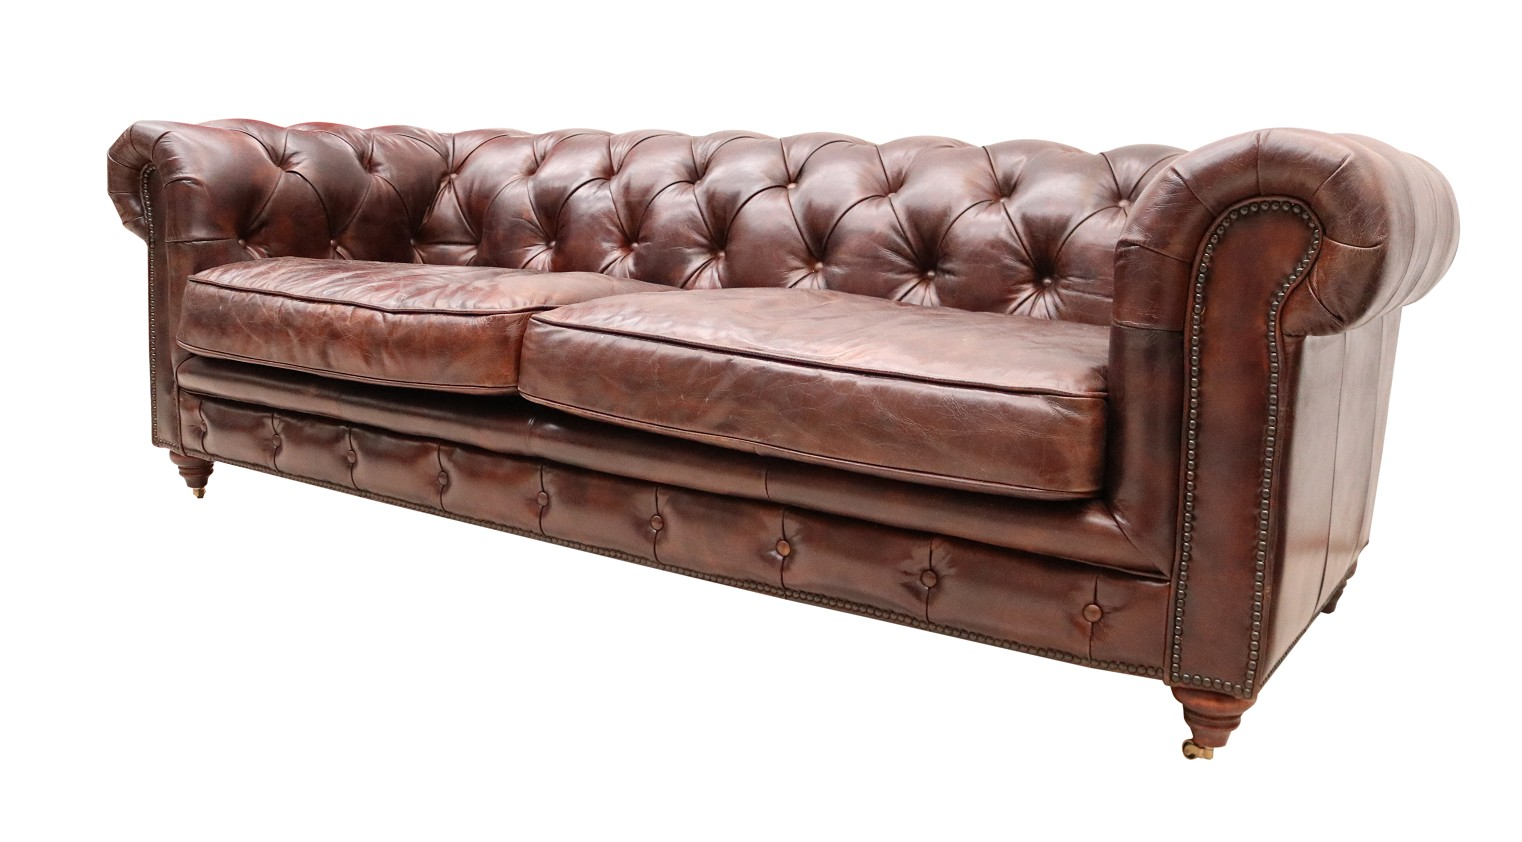 Vintage Distressed Tobacco Leather Chesterfield 3 Seater